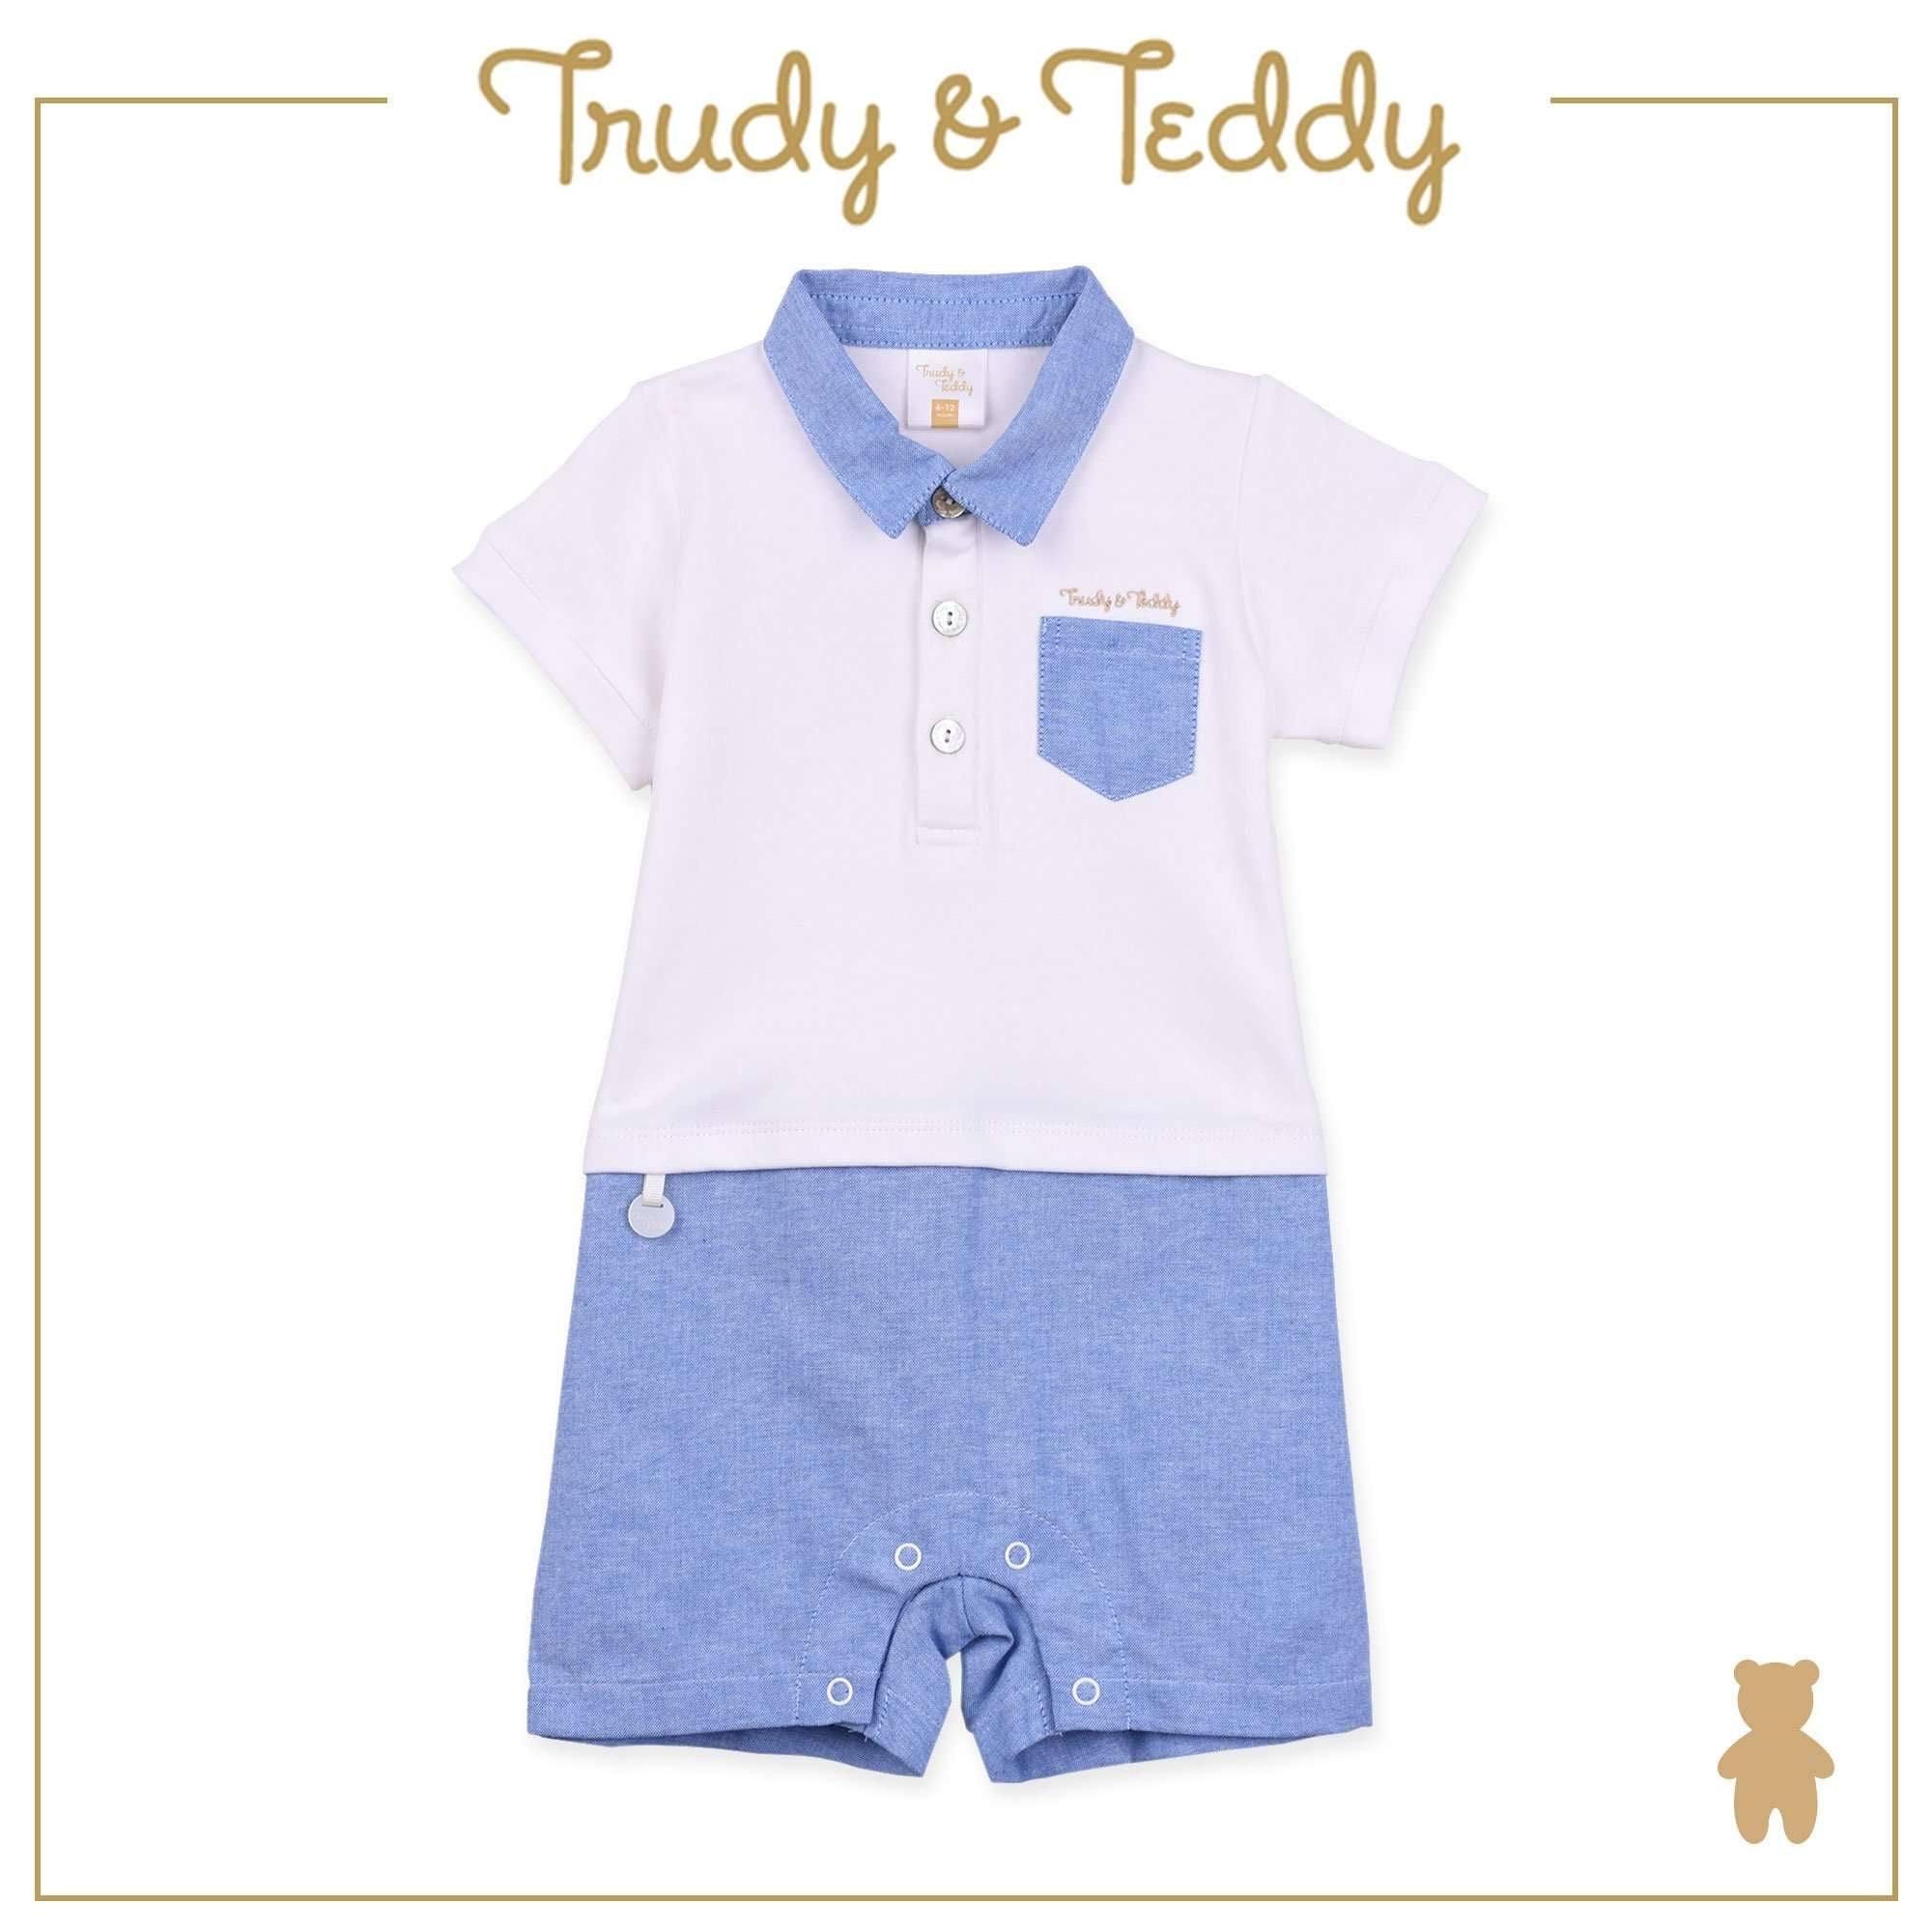 Trudy & Teddy Baby Boy Knit Short Sleeve Short Romper - Cream T911001-3623-W5 : Buy Trudy & Teddy online at CMG.MY